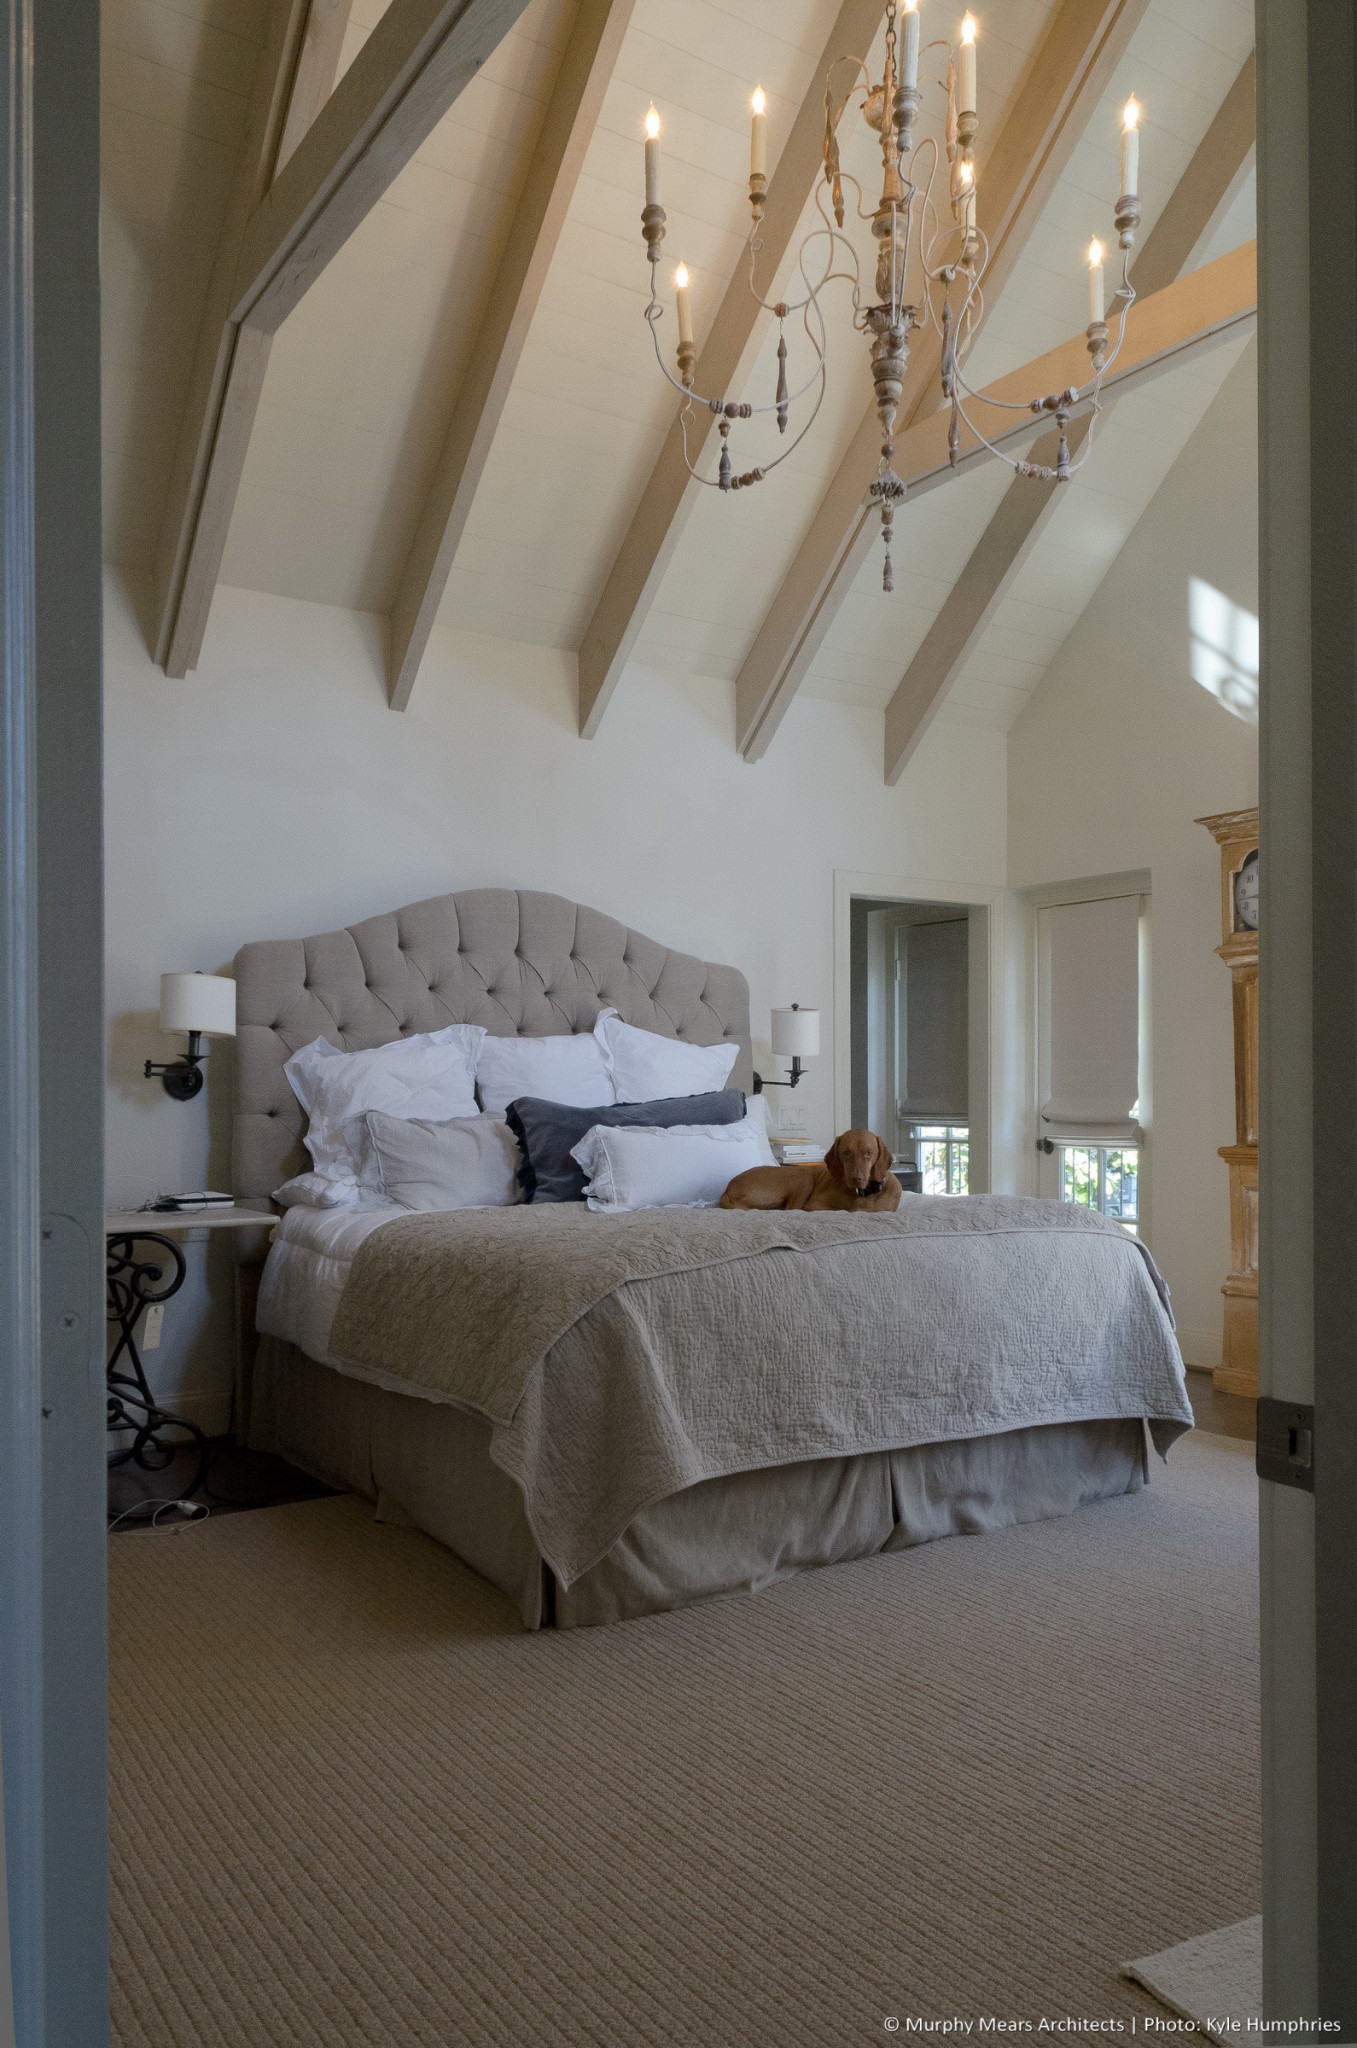 Pemberton Residence - New master bedroom addition with vaulted ceiling and high natural light.